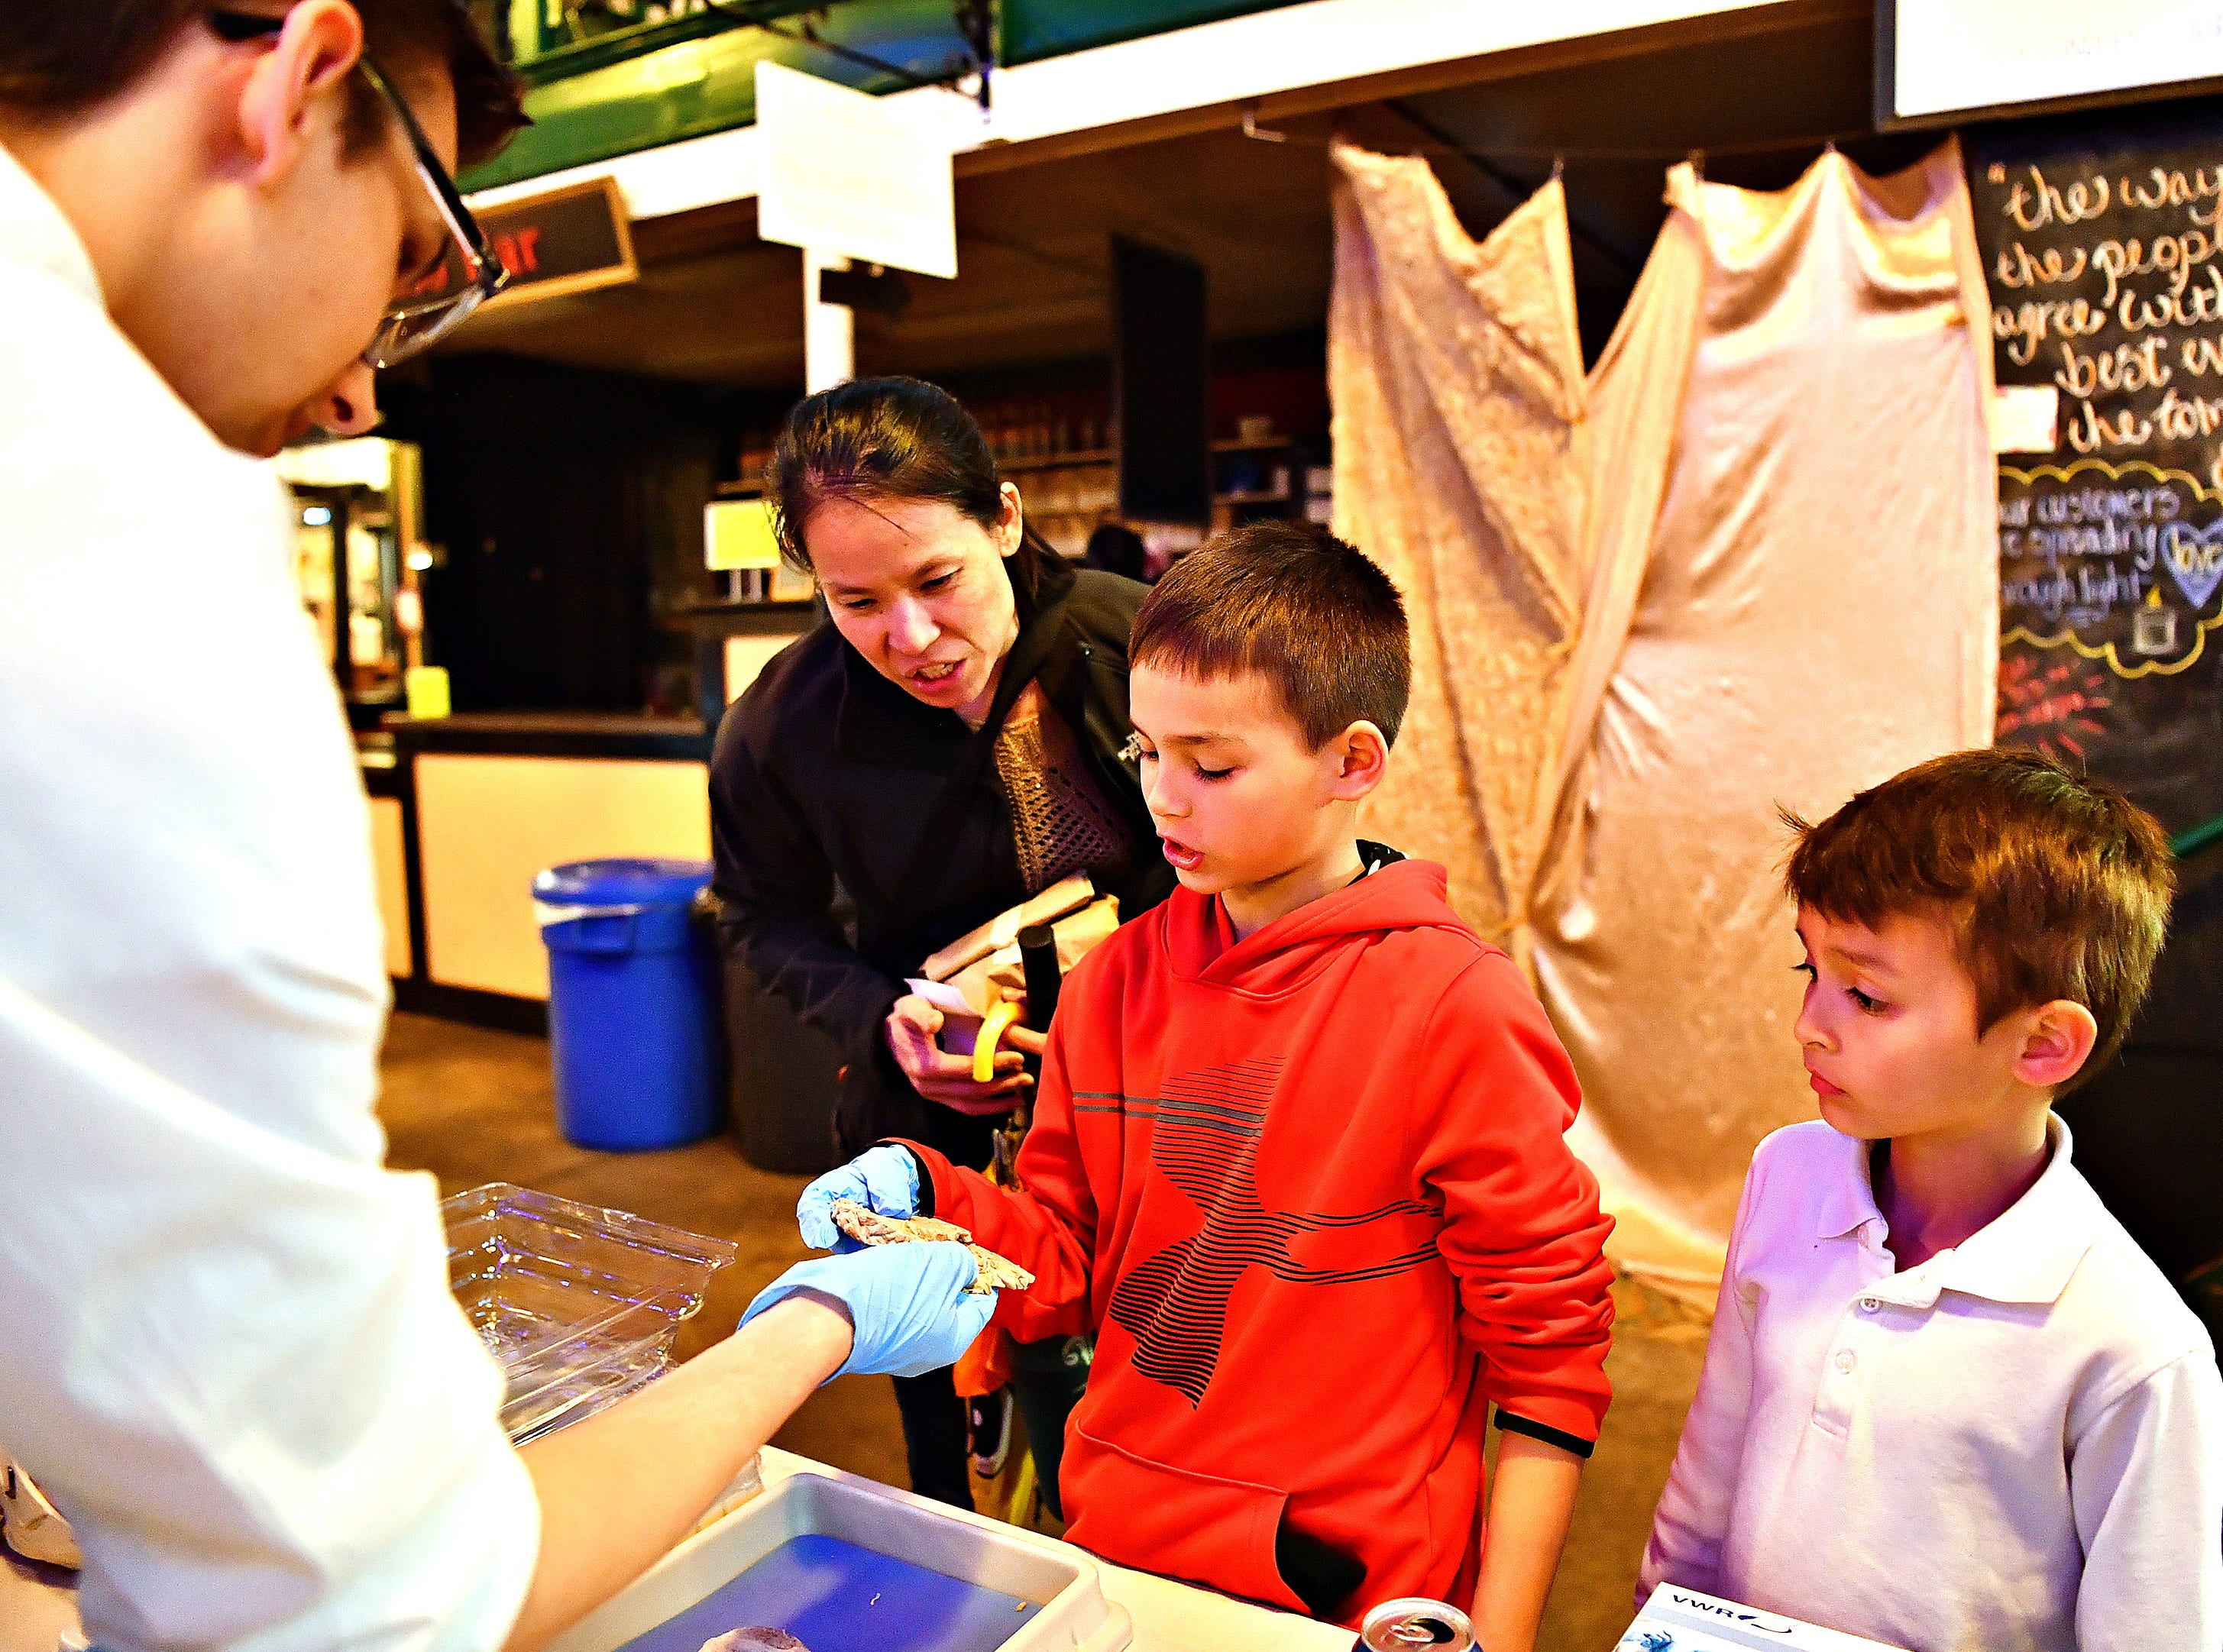 York College senior Nathaniel Boyer, left, hands a slice of human brain to Weston Duckett, 9, while Duckett's mother Karen Duckett and brother Andon Duckett, 7, all of Manchester Township, look on during York College's Brain Fair on First Friday at Central Market in York City, Friday, April 5, 2019. Dawn J. Sagert photo